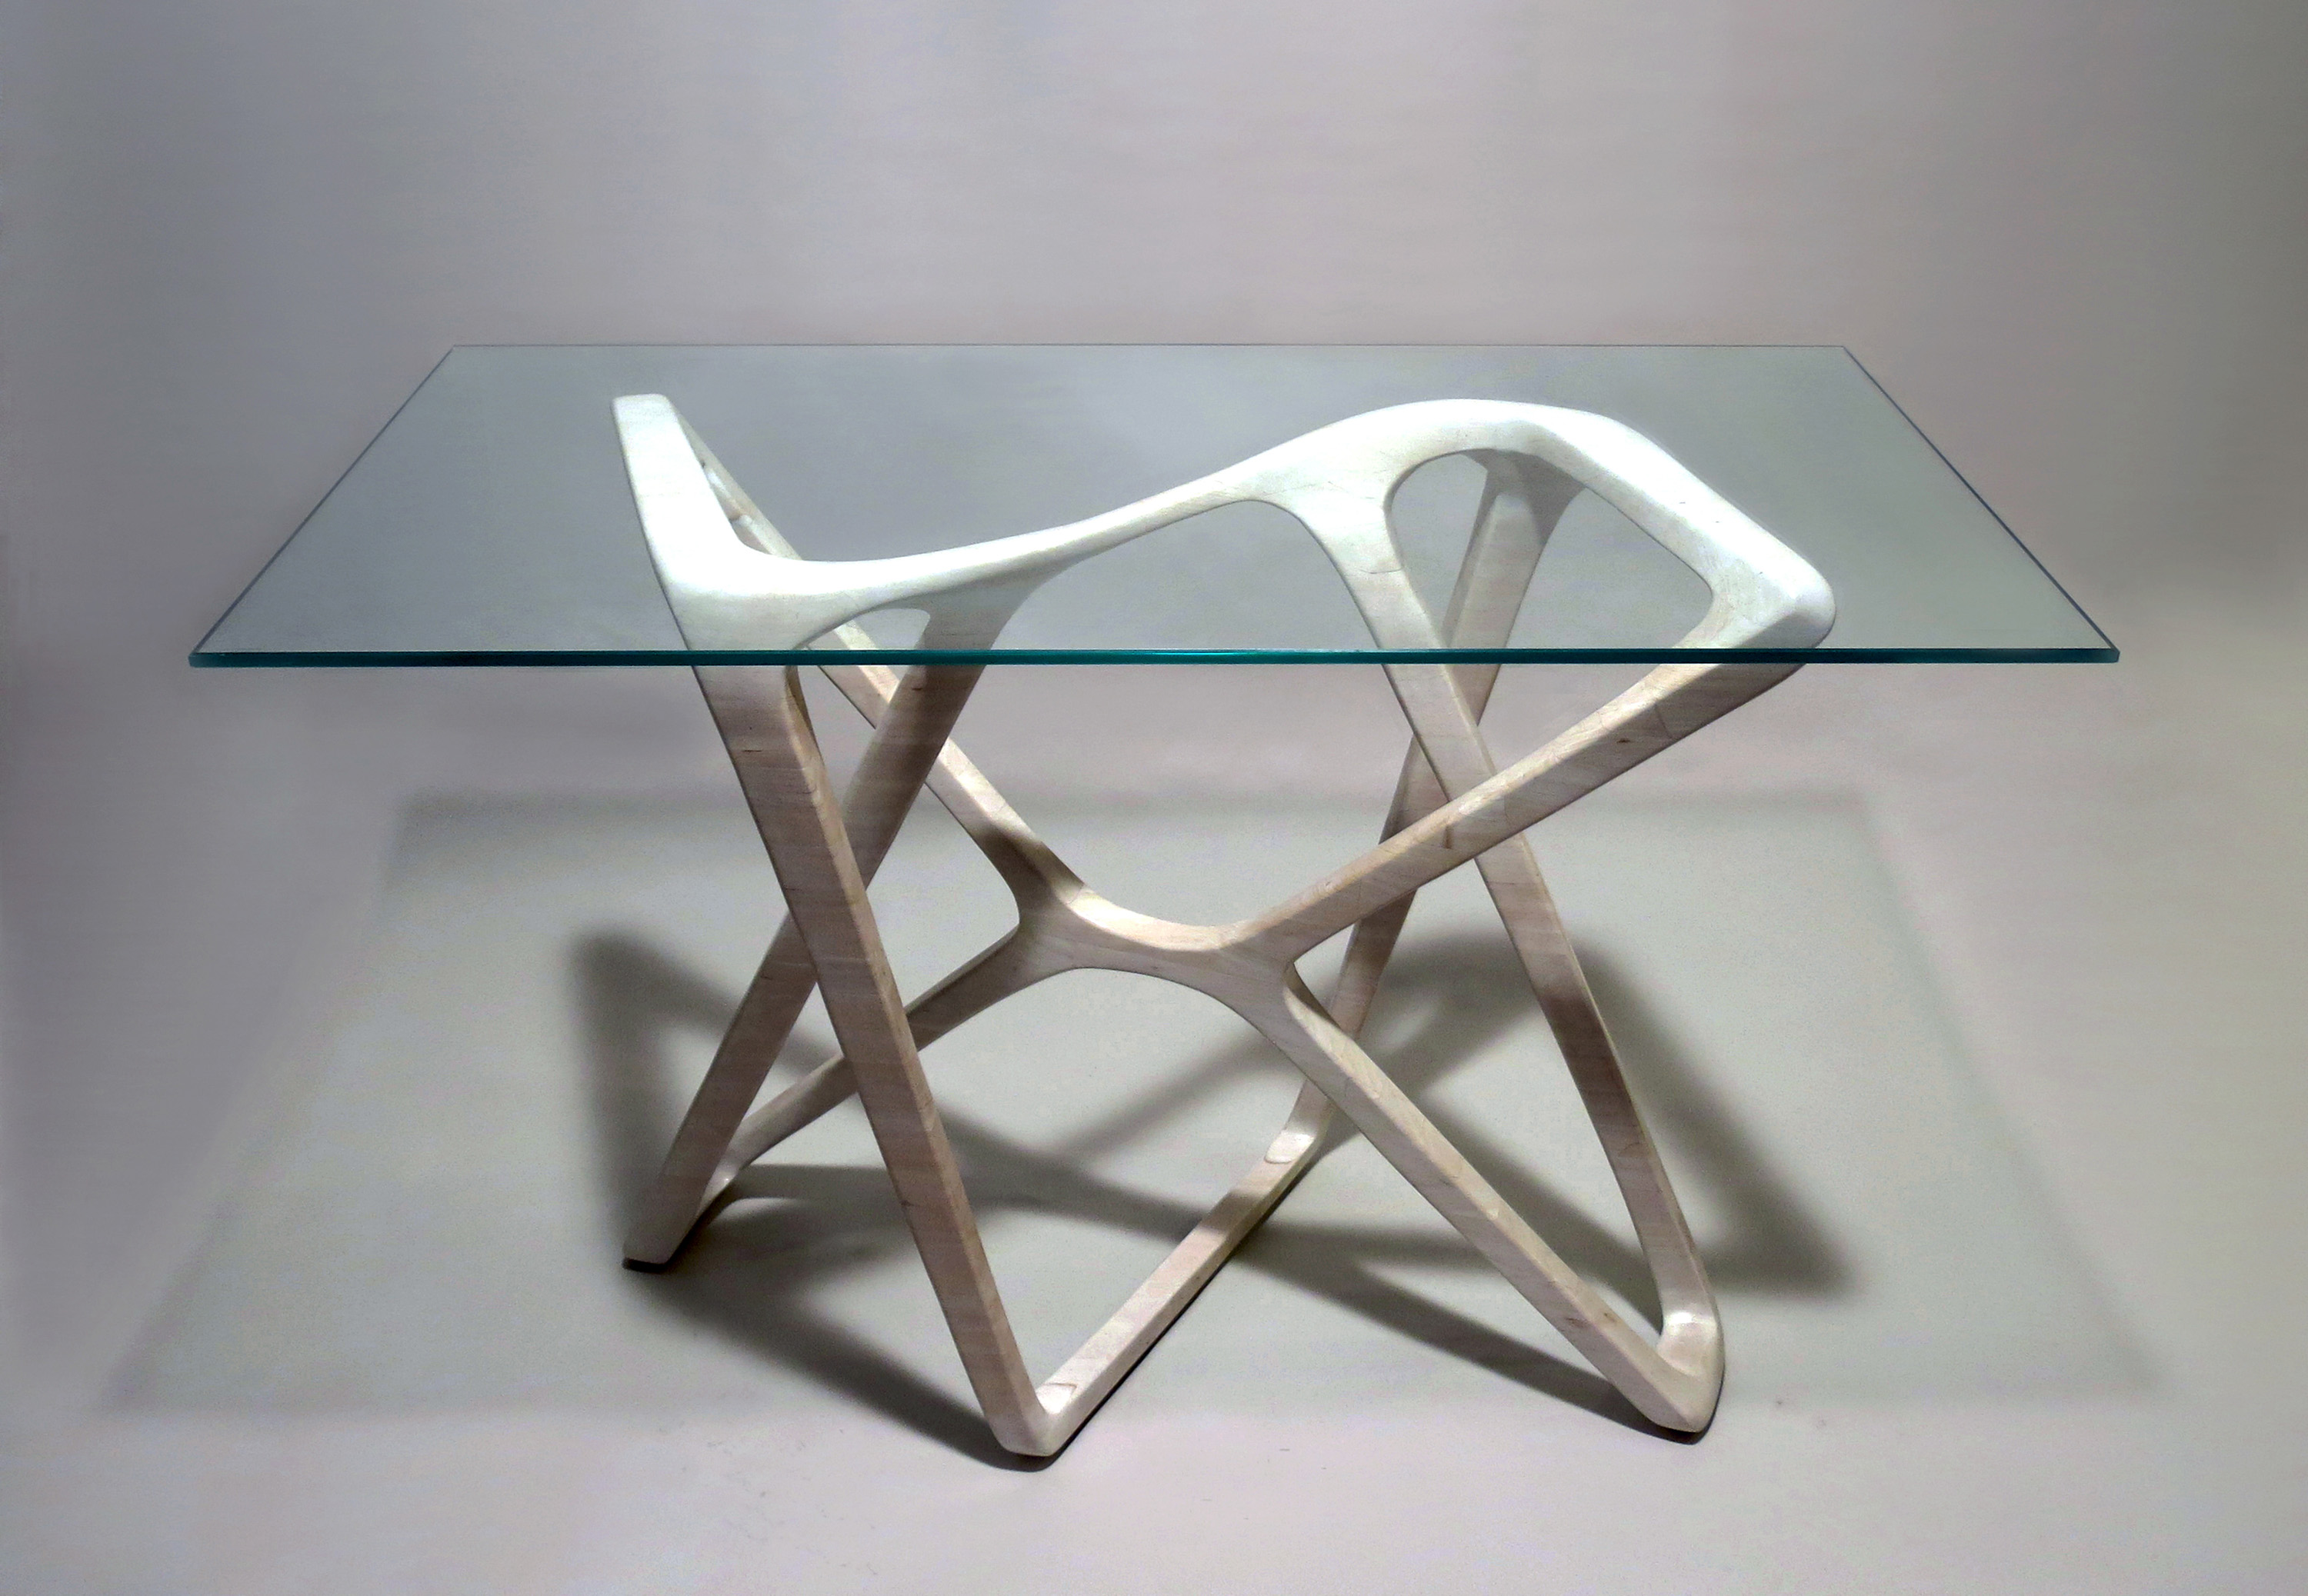 This image shows a rotationally-symmetrical wood desk base with a glass top